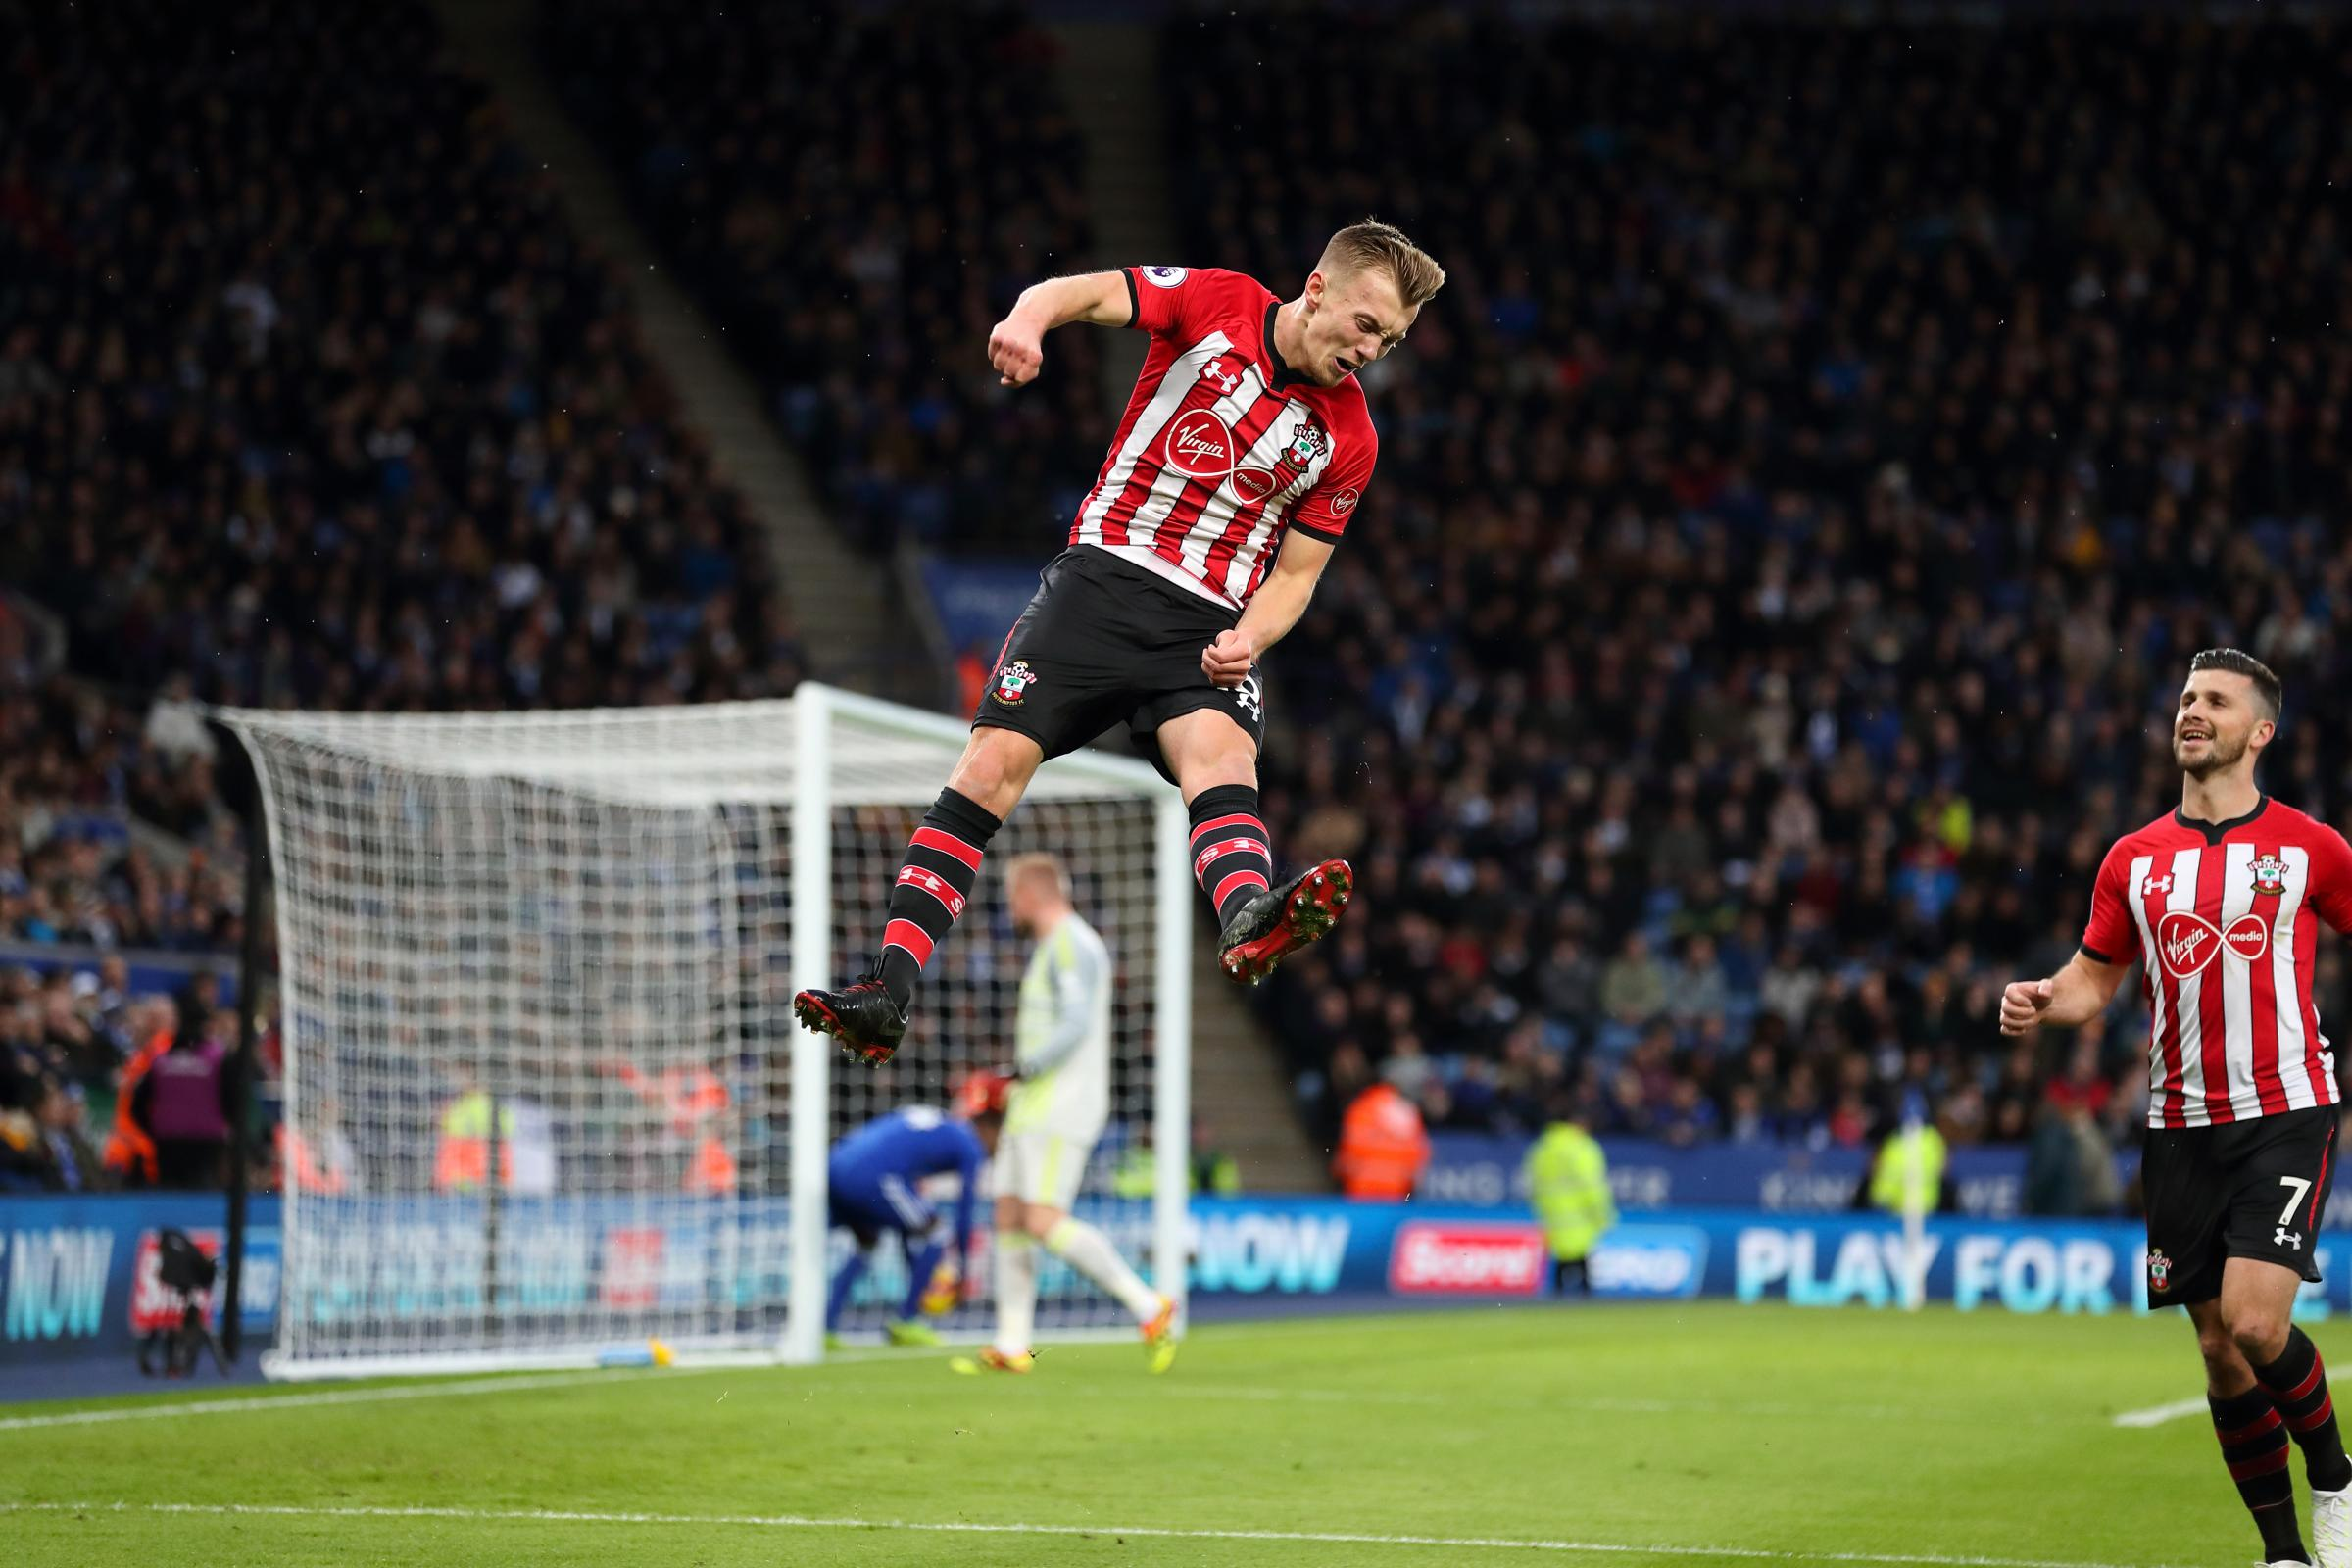 Rickie Lambert: James Ward-Prowse is one of the Premier League's best